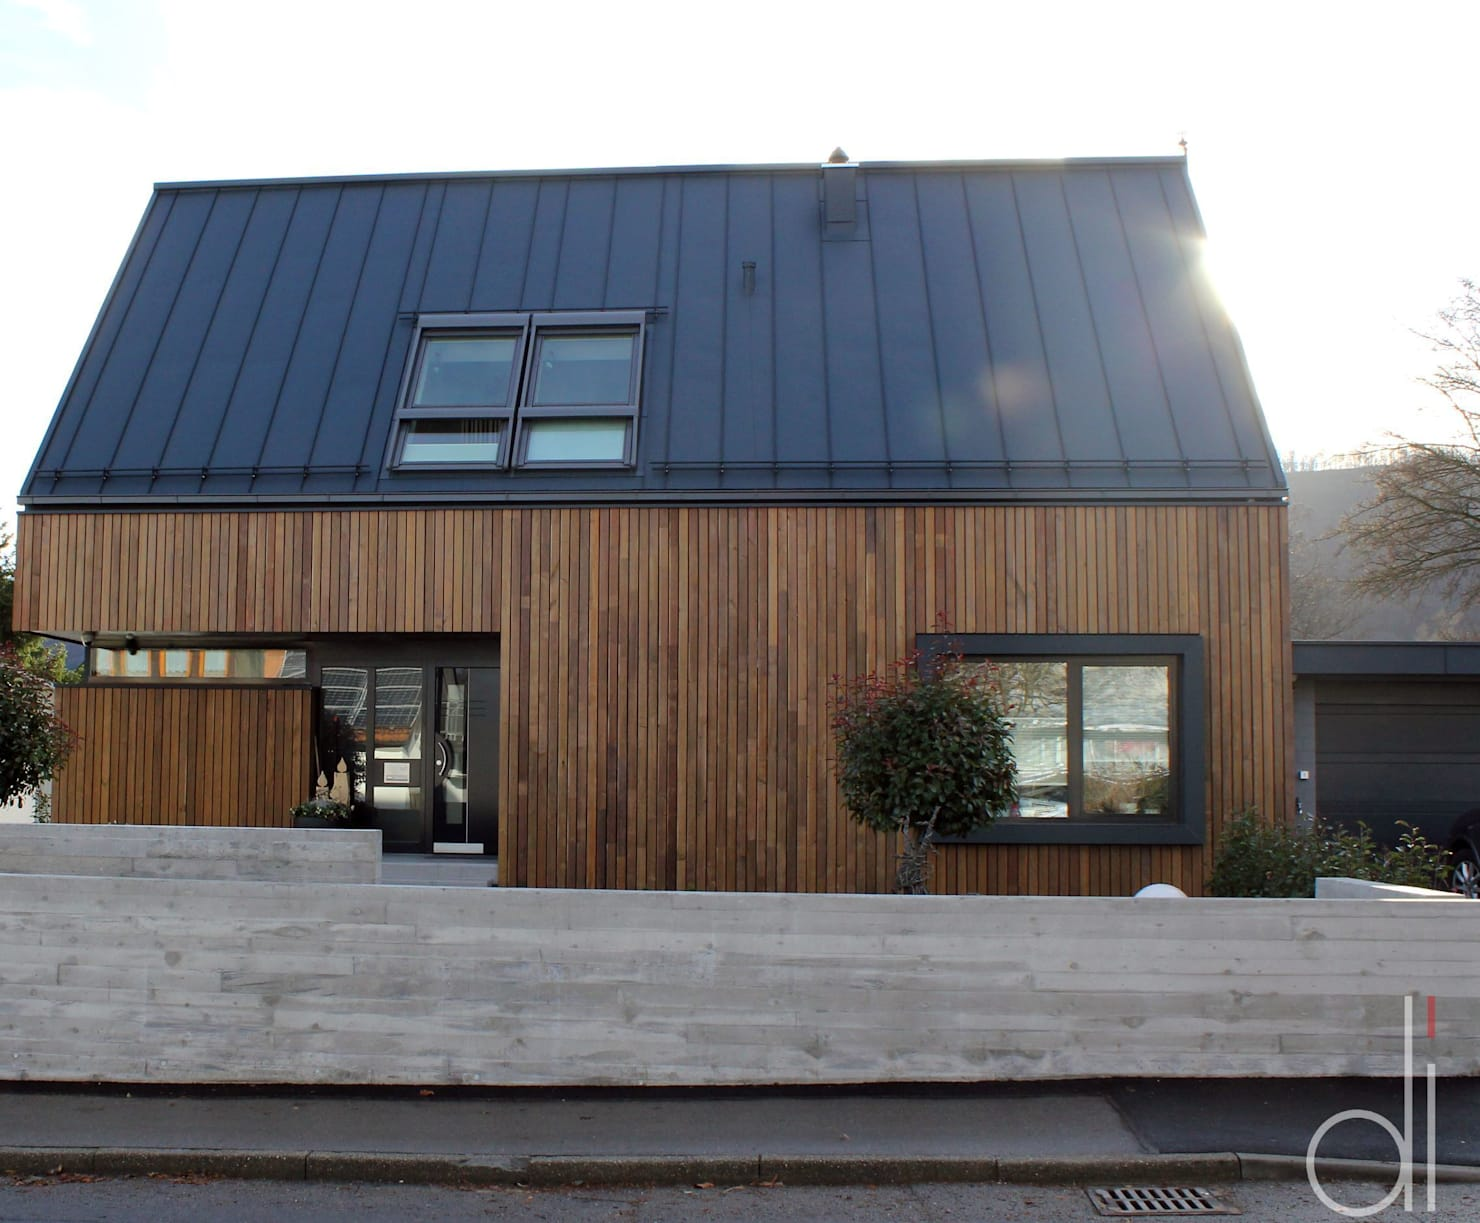 Amazing house facades you won't forget!